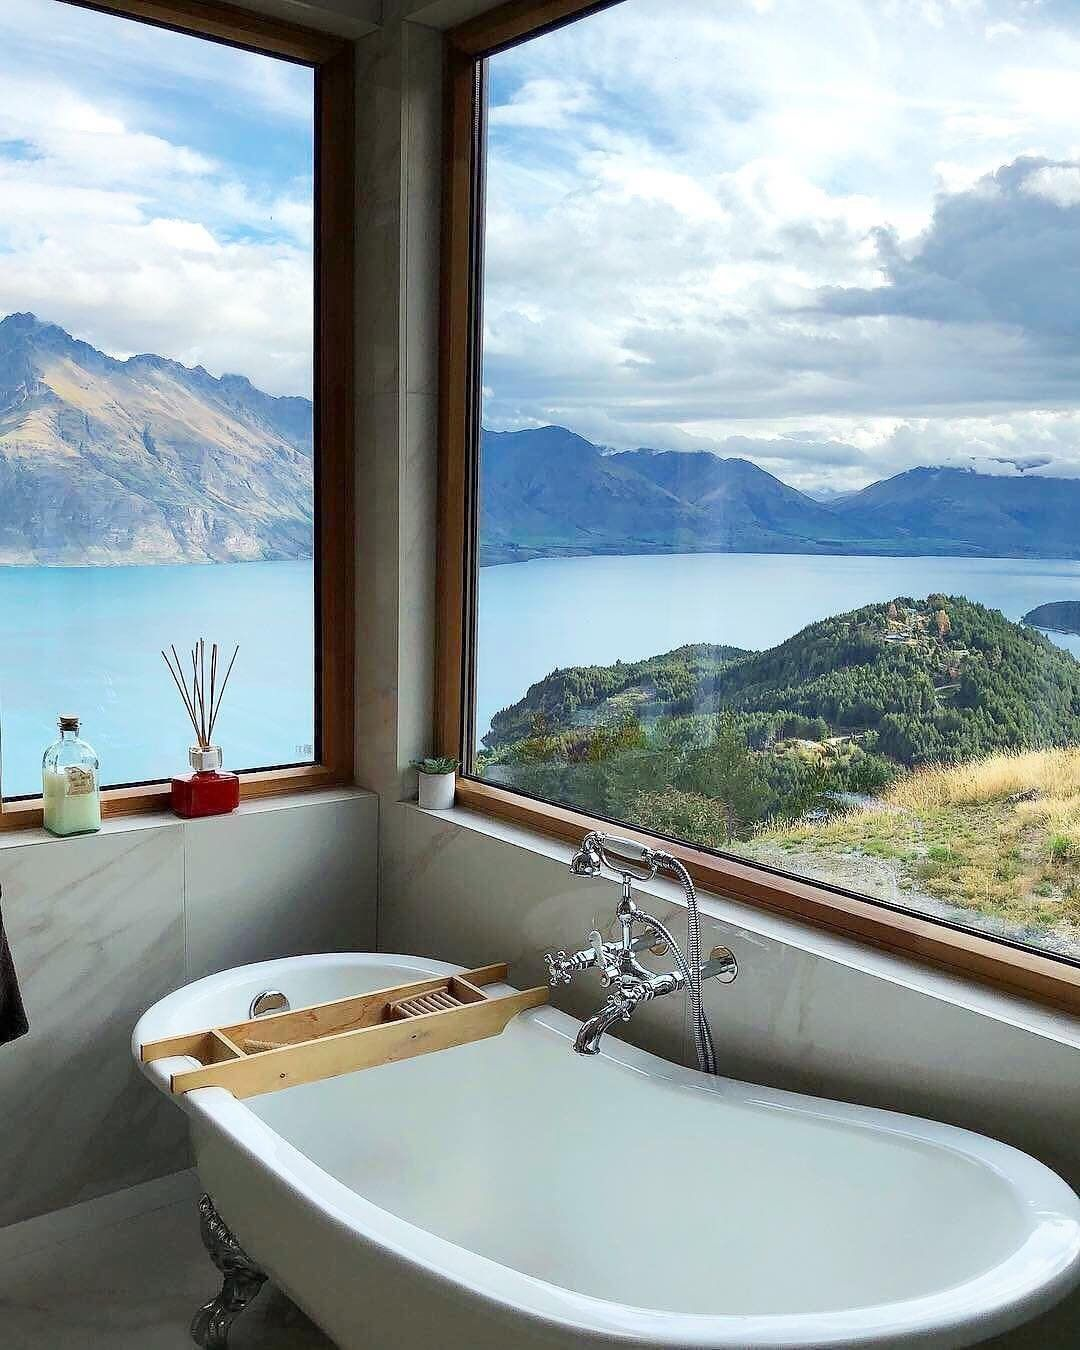 Bathroom With A View Bathtub Overlooking Mountains And Lake Ig Chachi86 Bathroom Interior Design Bathroom Design Bathroom Interior